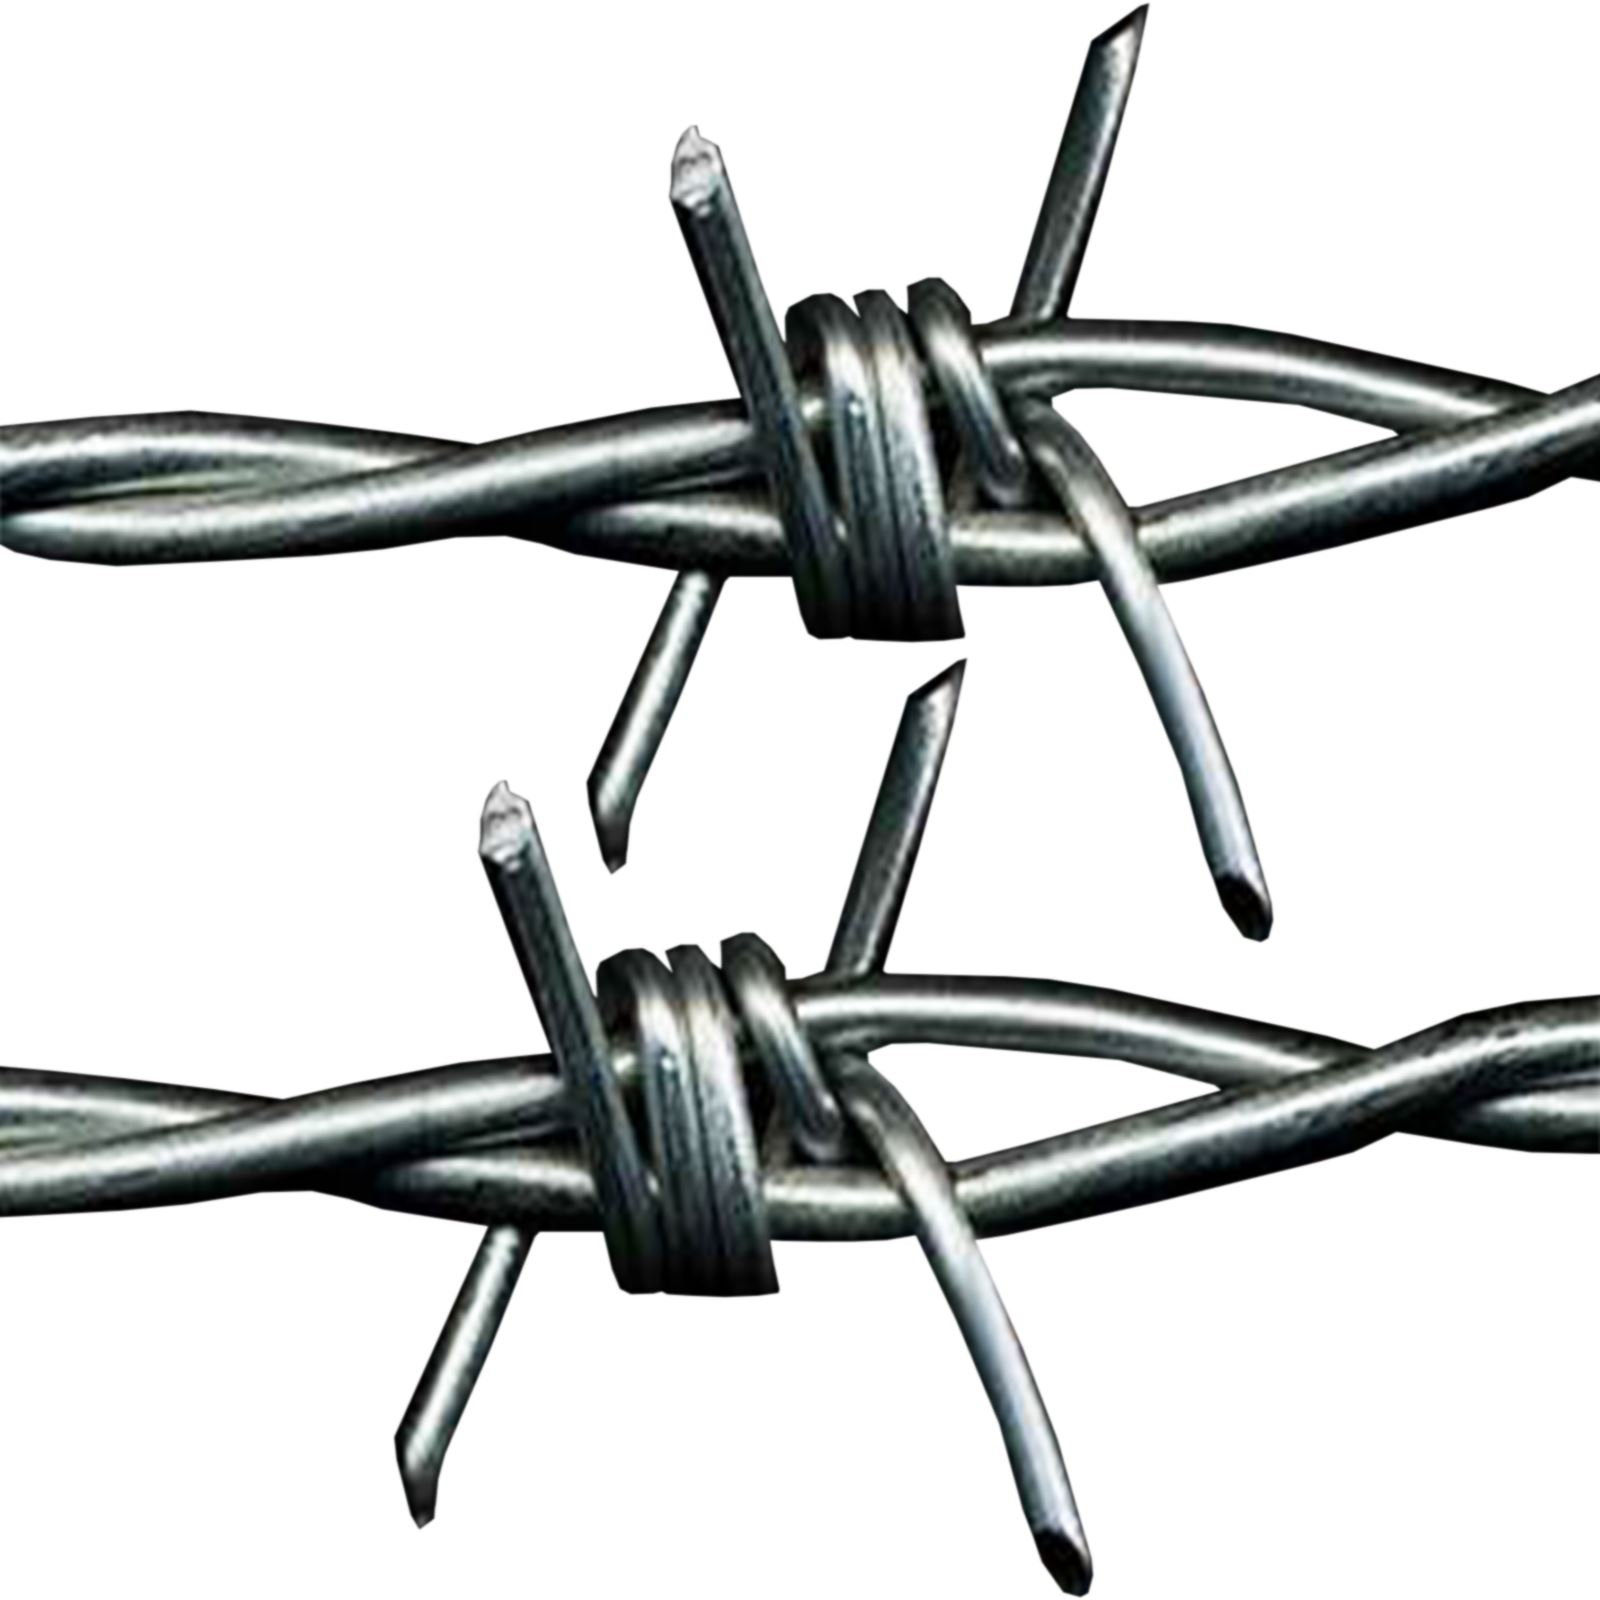 30m X 1 6mm Barbed Wire Galvanised Steel Barbed Wire In Carry Tub 30metre 100ft